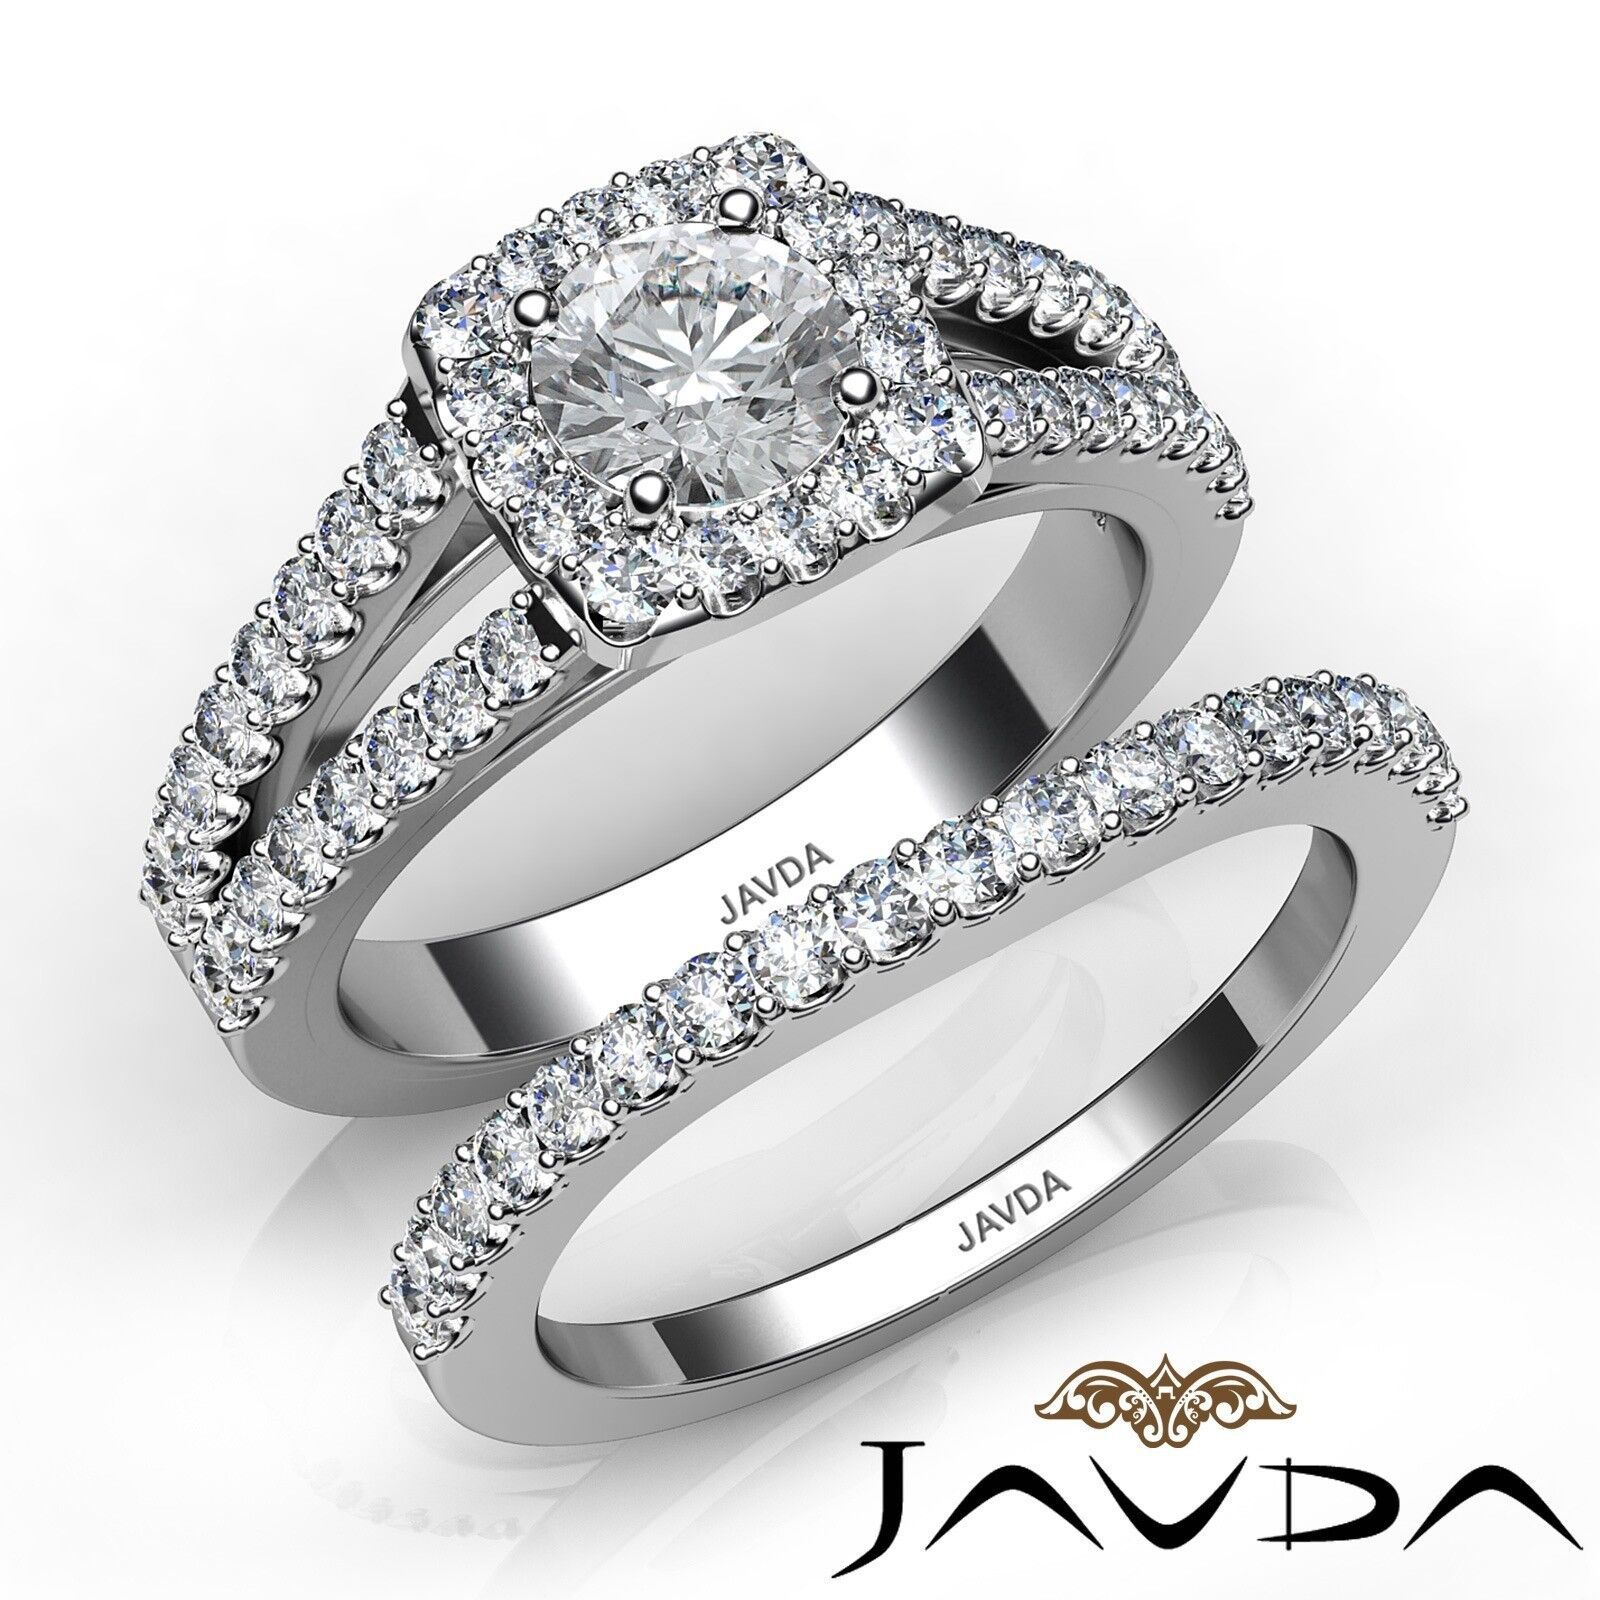 1.81ctw Charming Halo Bridal Set Round Diamond Engagement Ring GIA F-VVS2 W Gold